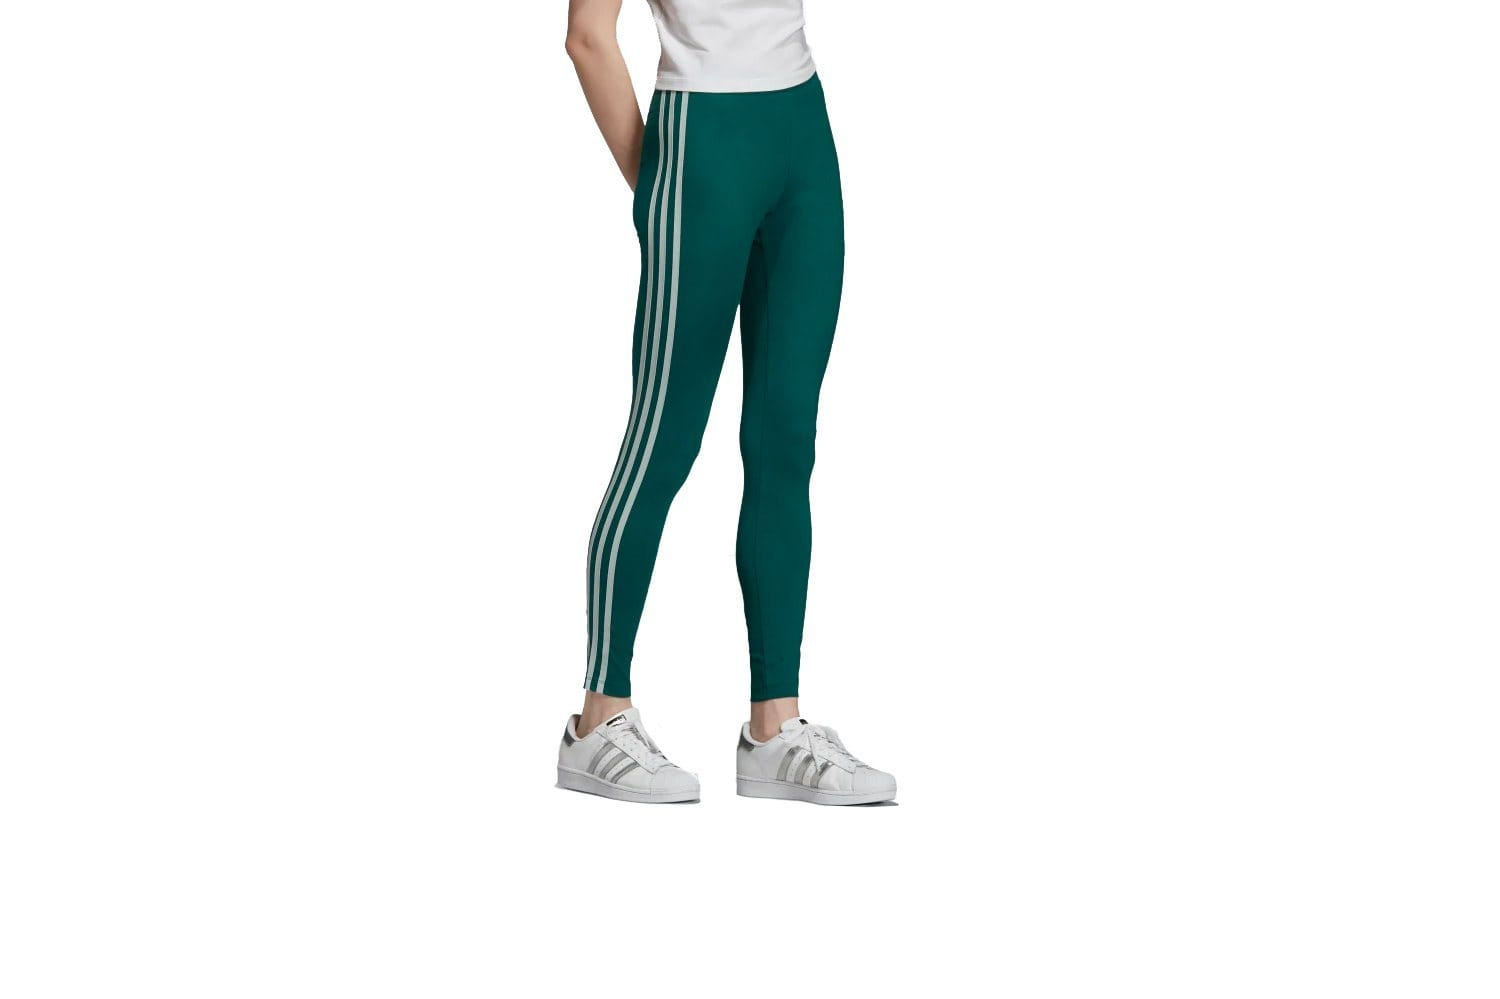 3 STRIPES LEGGINGS - ED7594 WOMENS SOFTGOODS ADIDAS